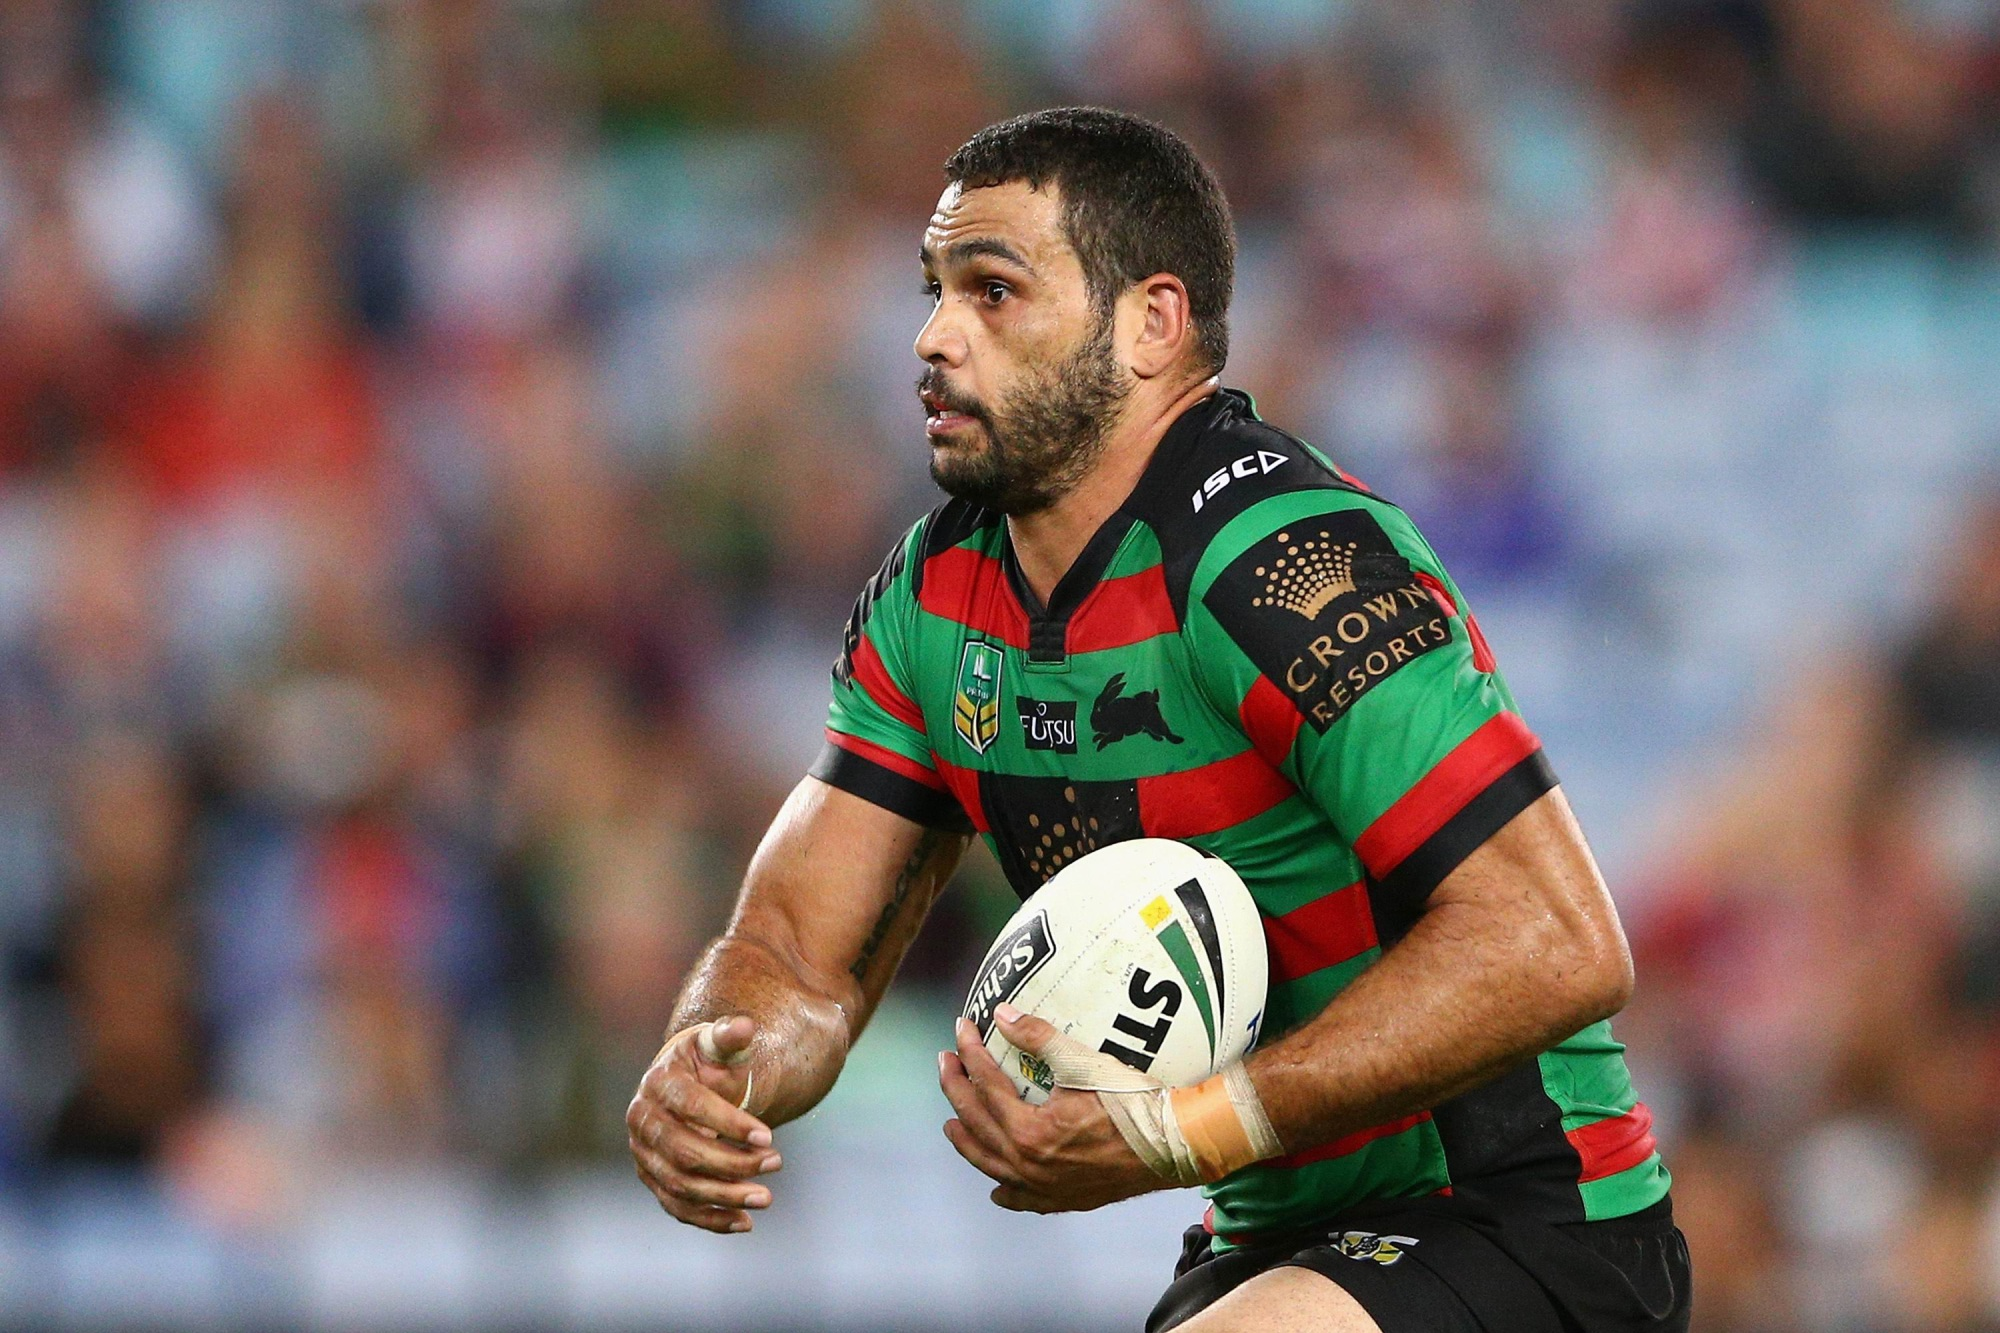 Greg Inglis is hoping to feature in the Rabbitohs' clash with the Titans in Perth.